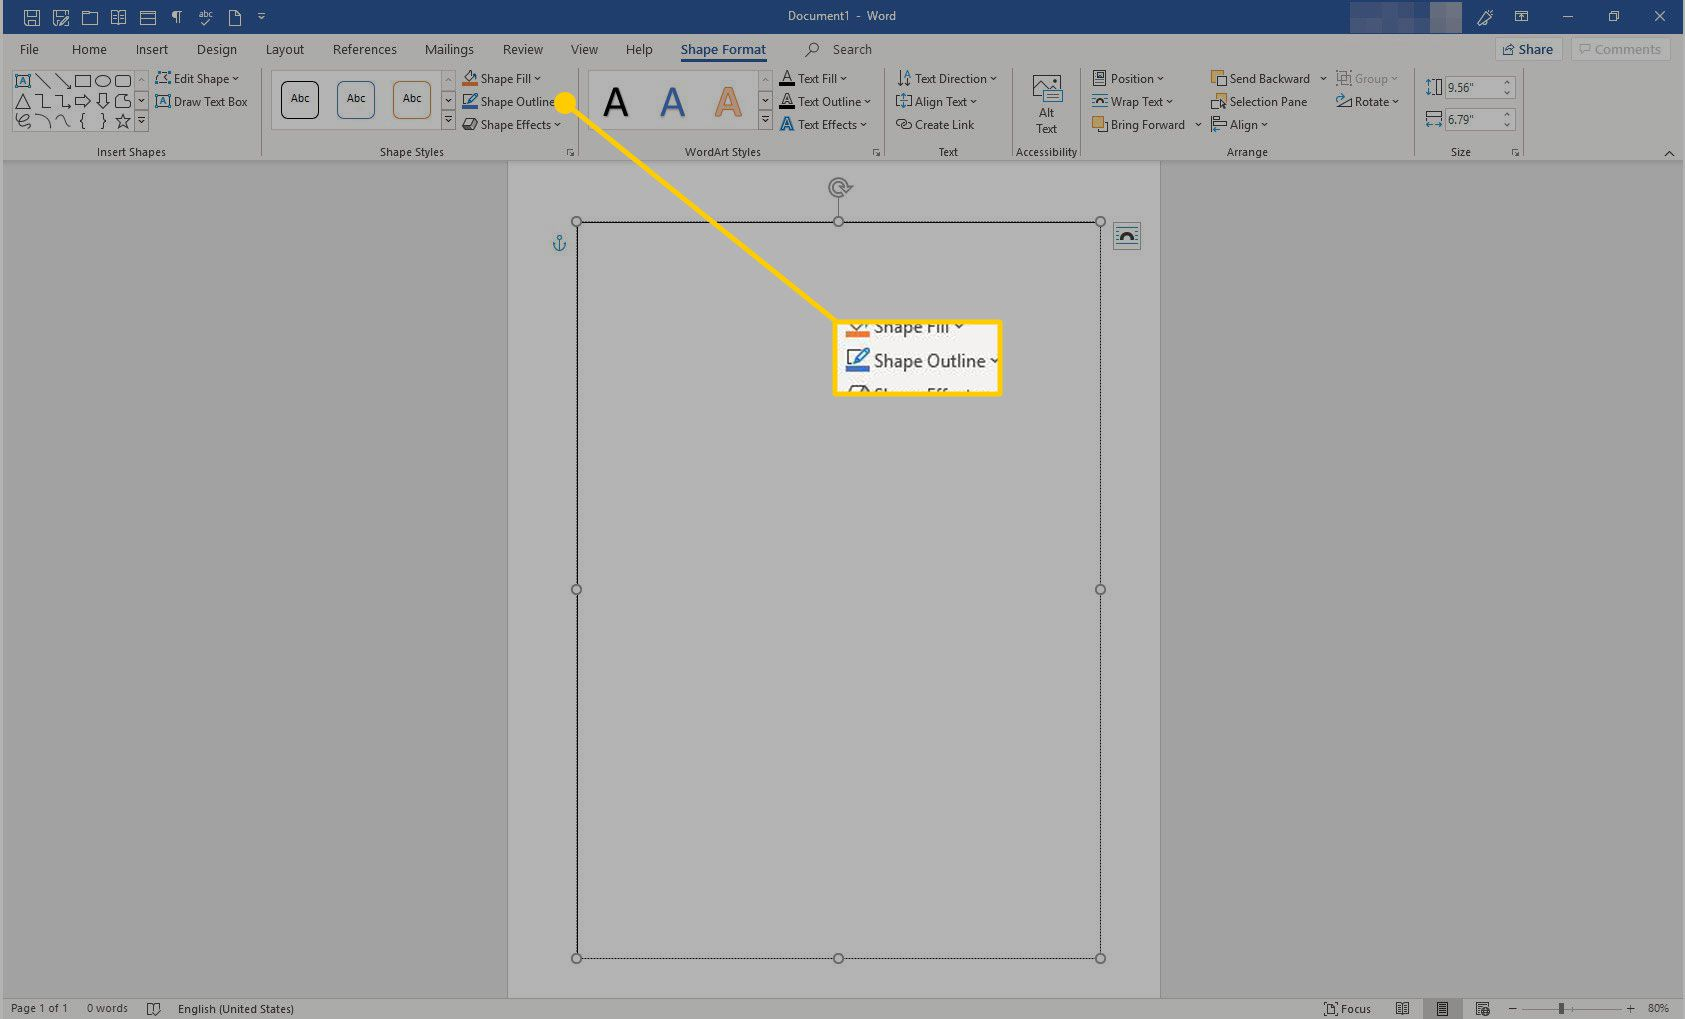 Word with the Shape Outline option highlighted